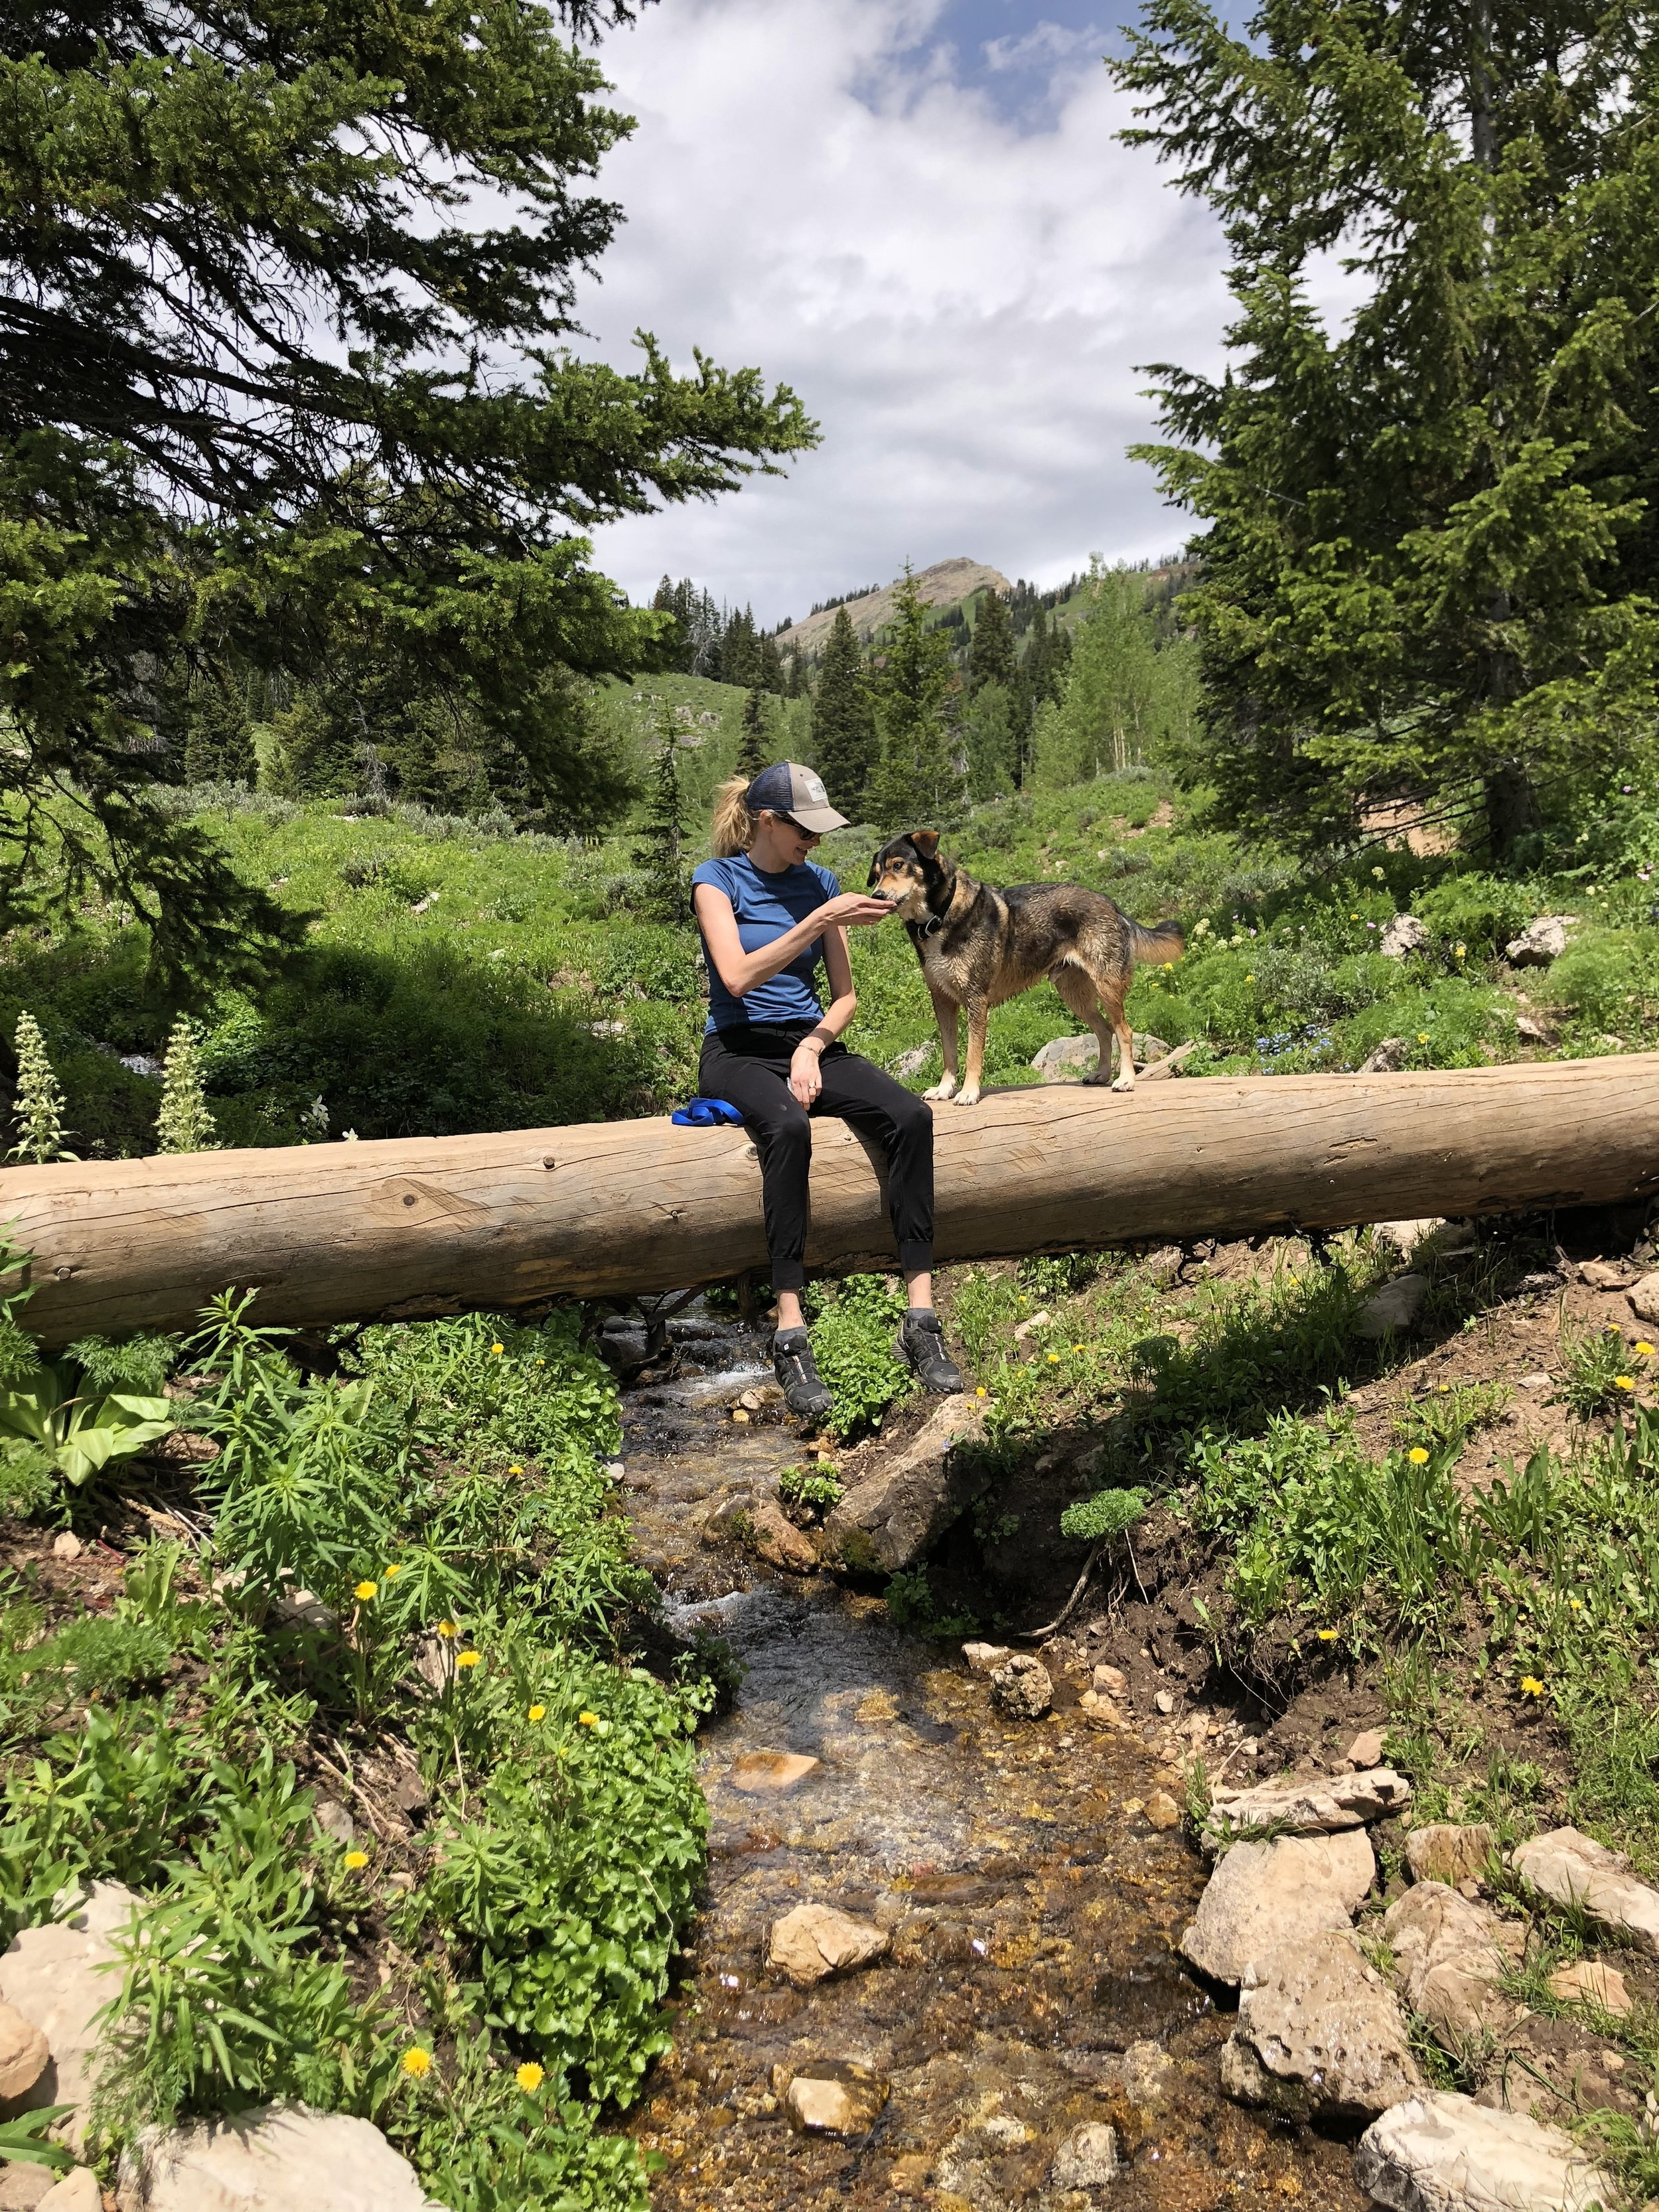 Emily's source of strength and happiness: Being in nature with her dogs